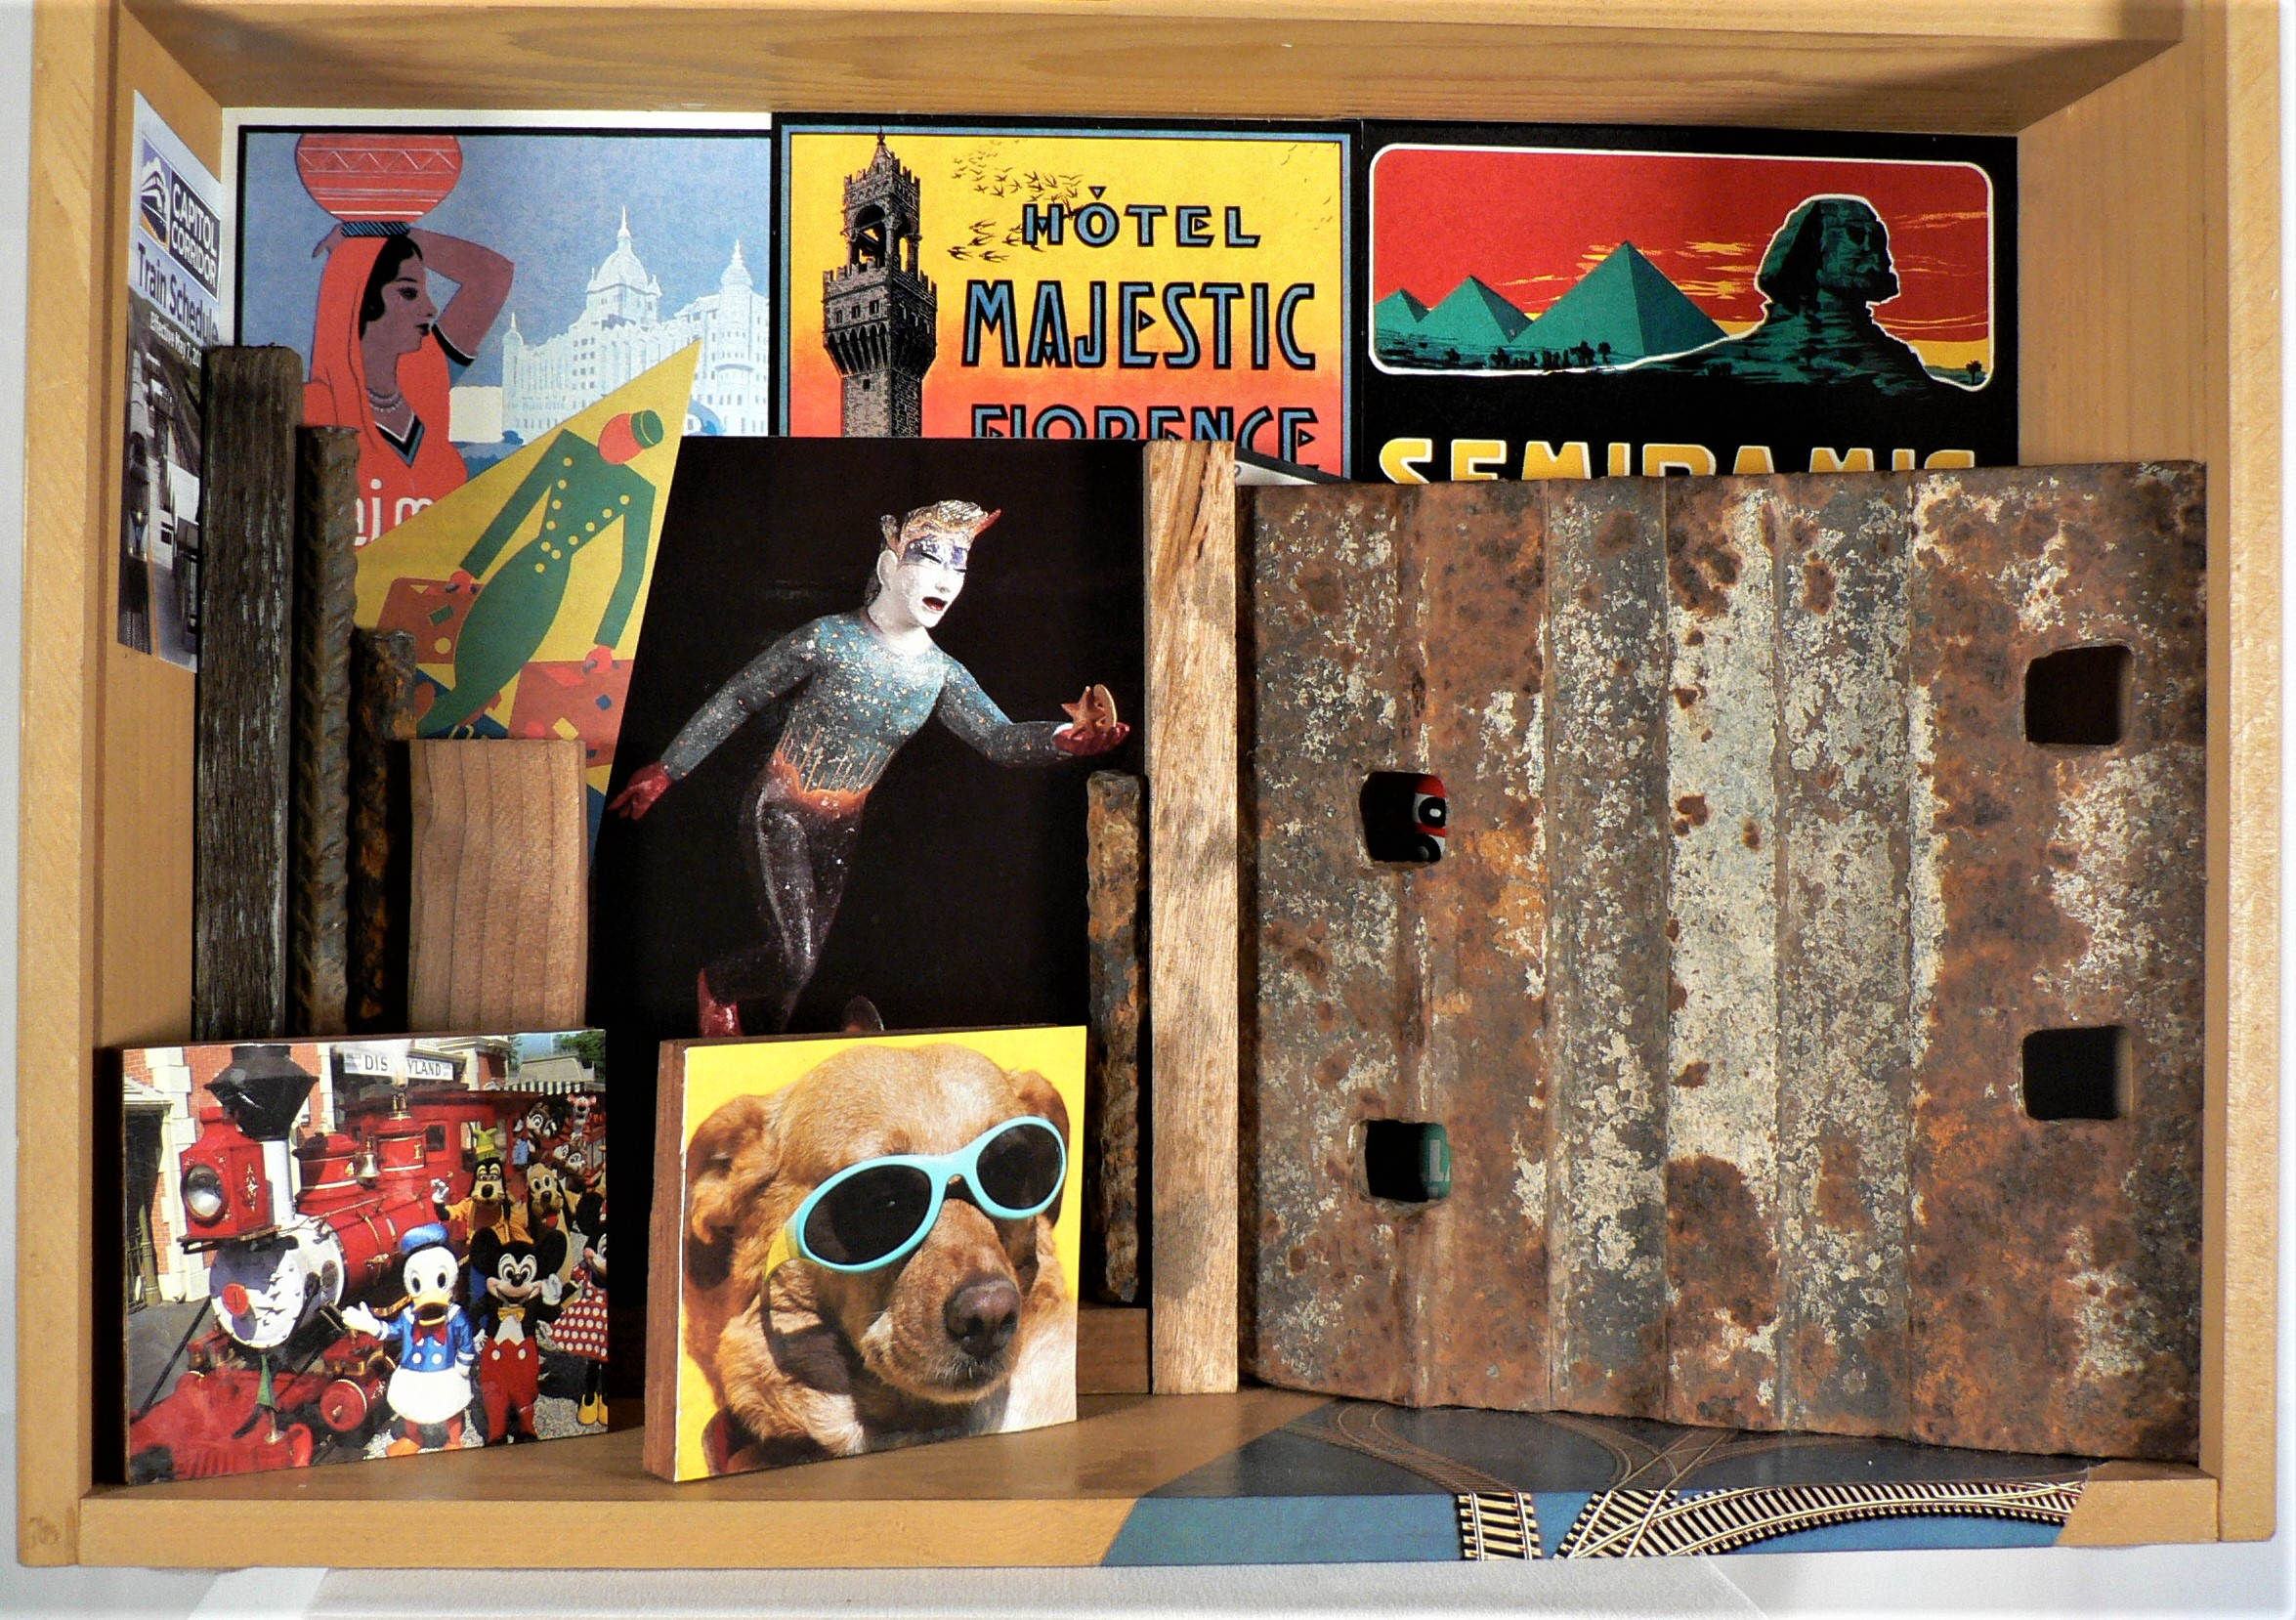 """Lost Track - """"Half the fun of travel is the esthetic of lostness."""" – Paul TherouxMaterials: California rice wood box; metal trolley segment; paper luggage label reproductions (Saturn Press); paper Conoco ad image; art postcard of Yoshio Taylor ceramic statute (Natsoulas Gallery); Disneyland postcard; Wag Hotel postcard; rebar; paper; acrylic paint. Dimensions: 13""""H x 17.5""""W x 5""""D. Created: December 2018.Status: For Sale ($300)"""